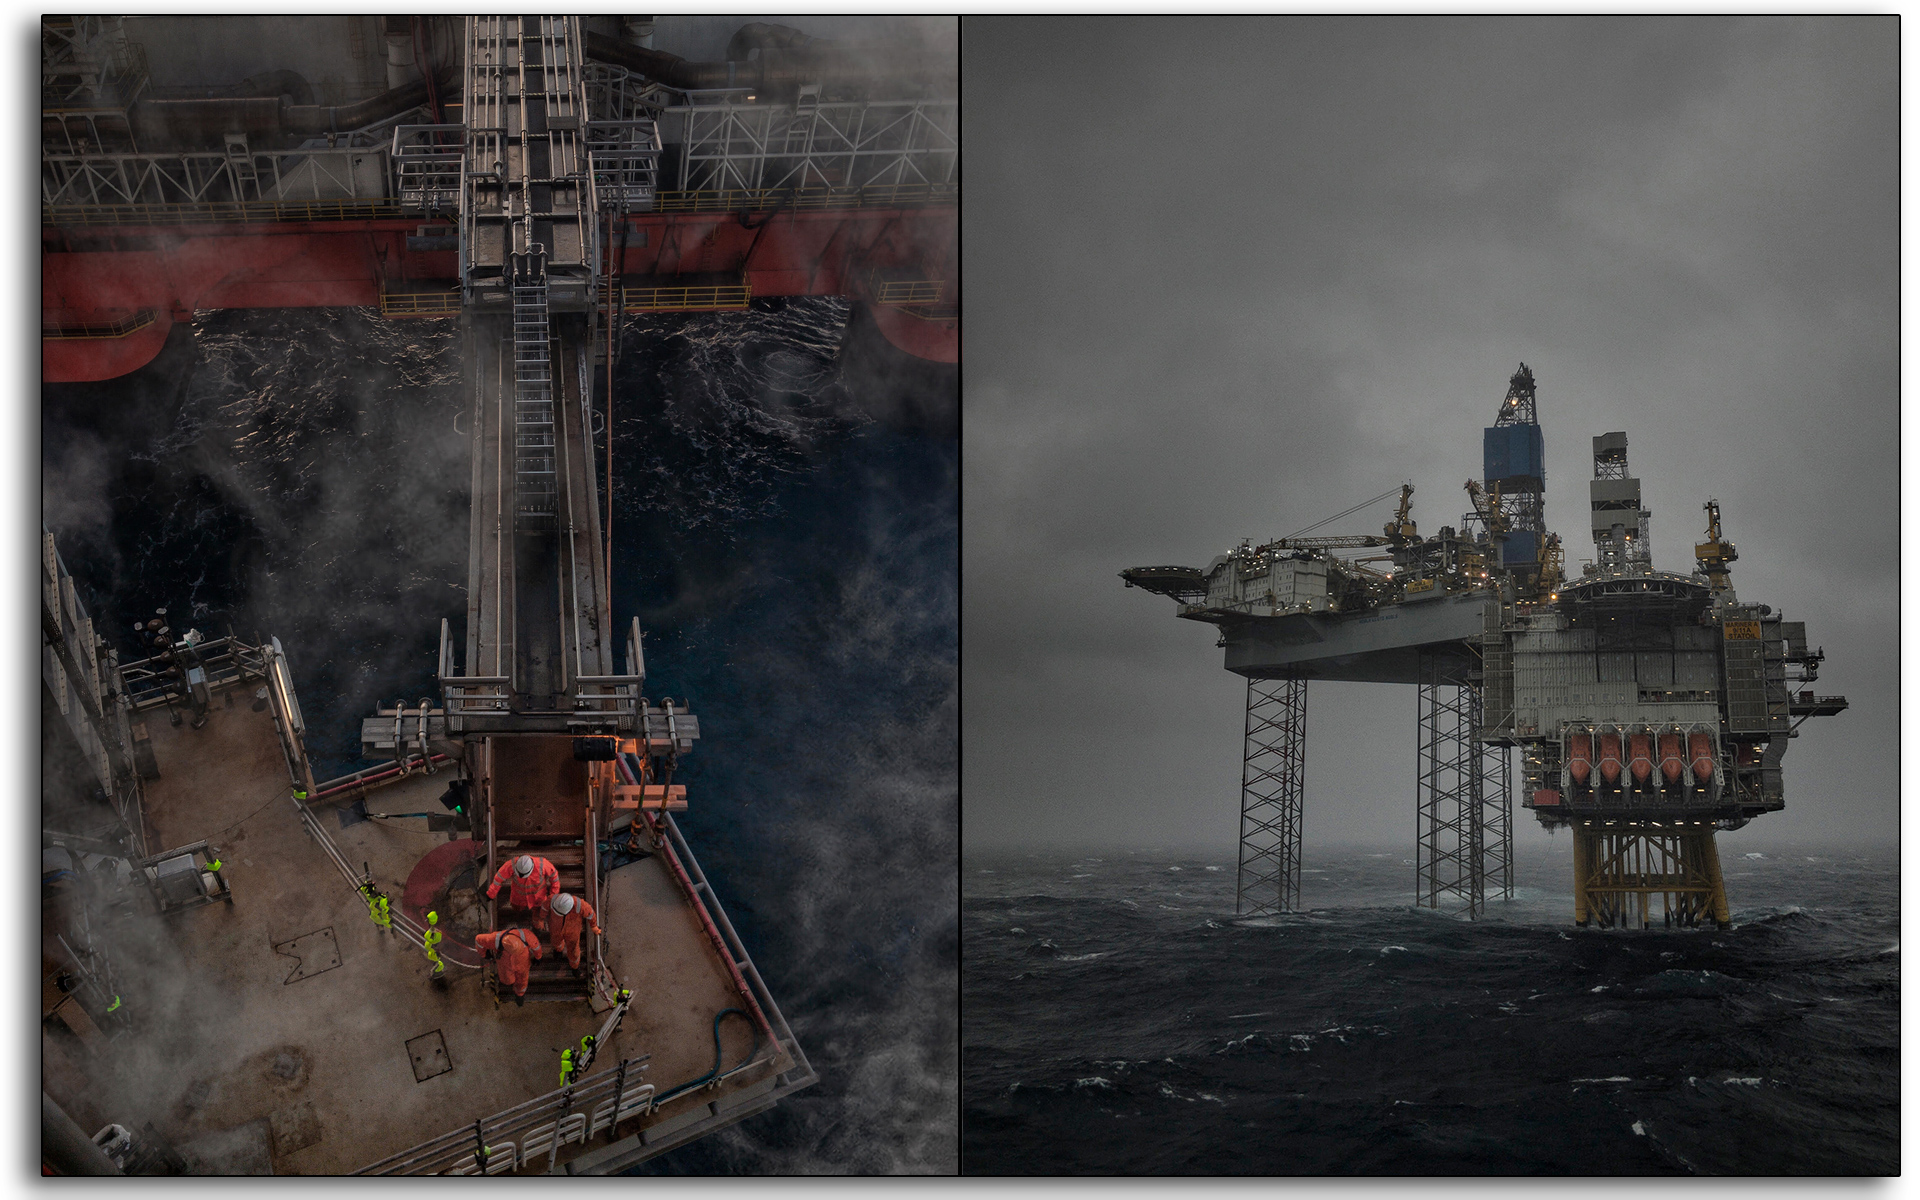 Stormy weather, rough seas, Oil and gas, oil rig, Scotland, industry, industrial, Mariner, workers, construction.jpg